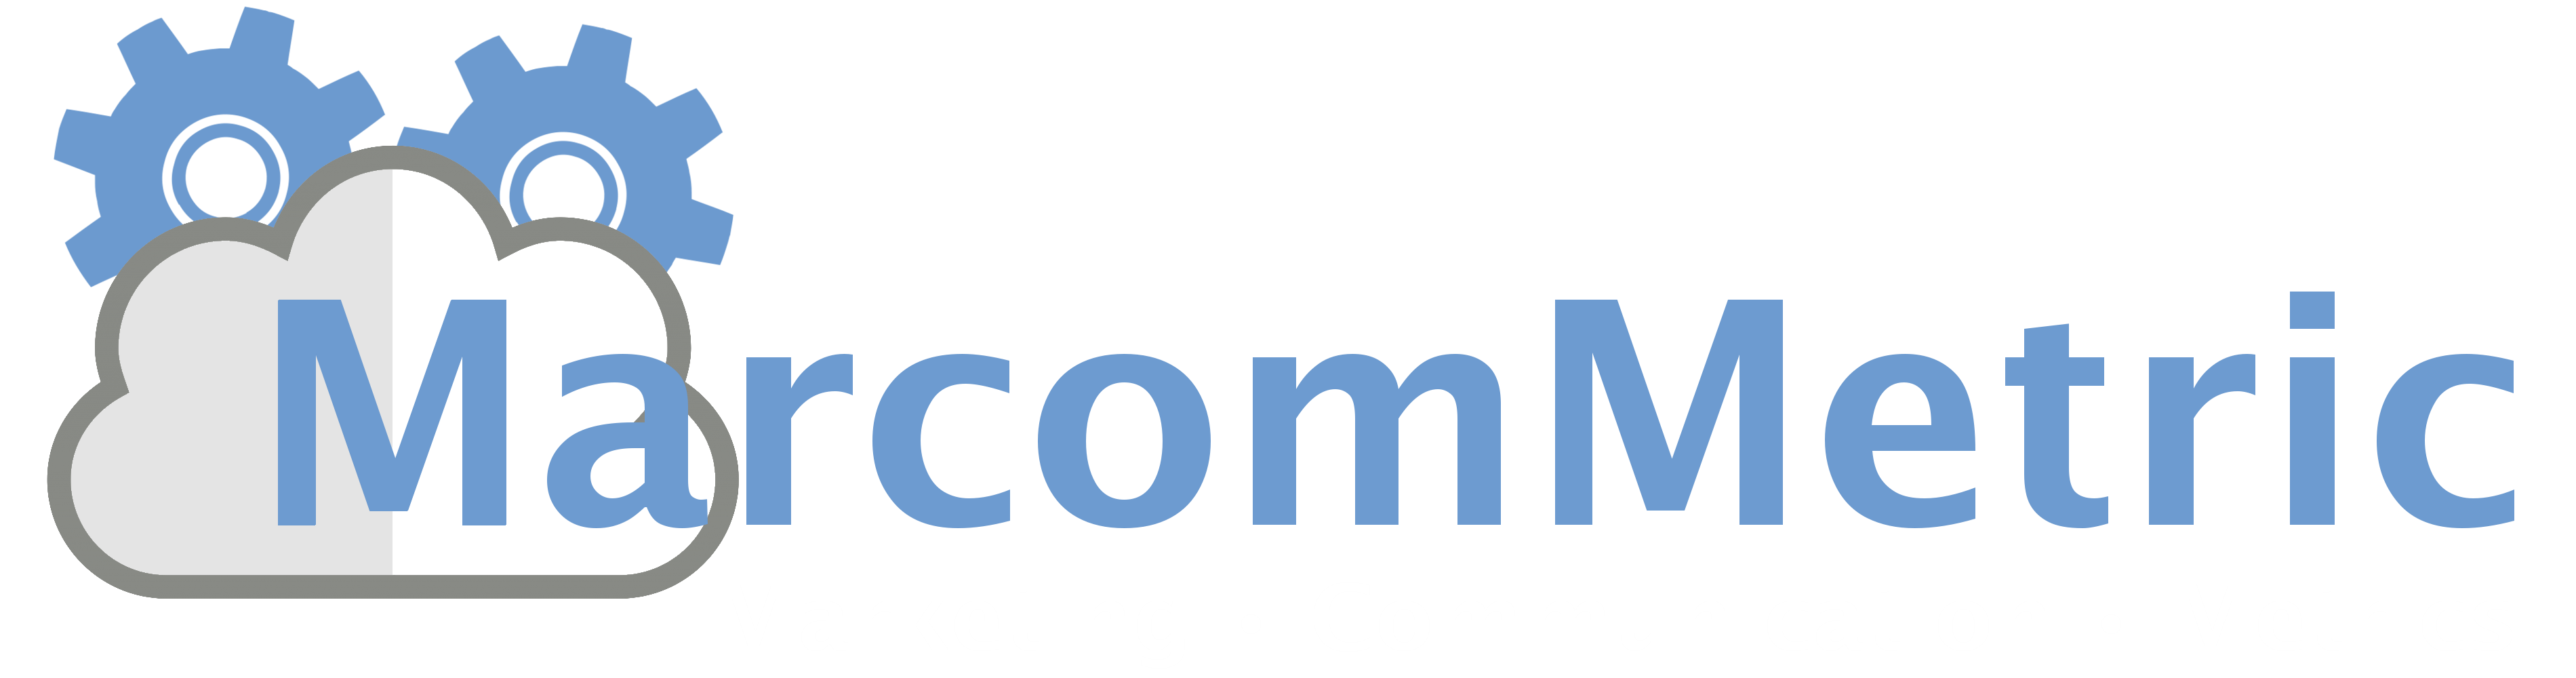 MarcomMetric logo